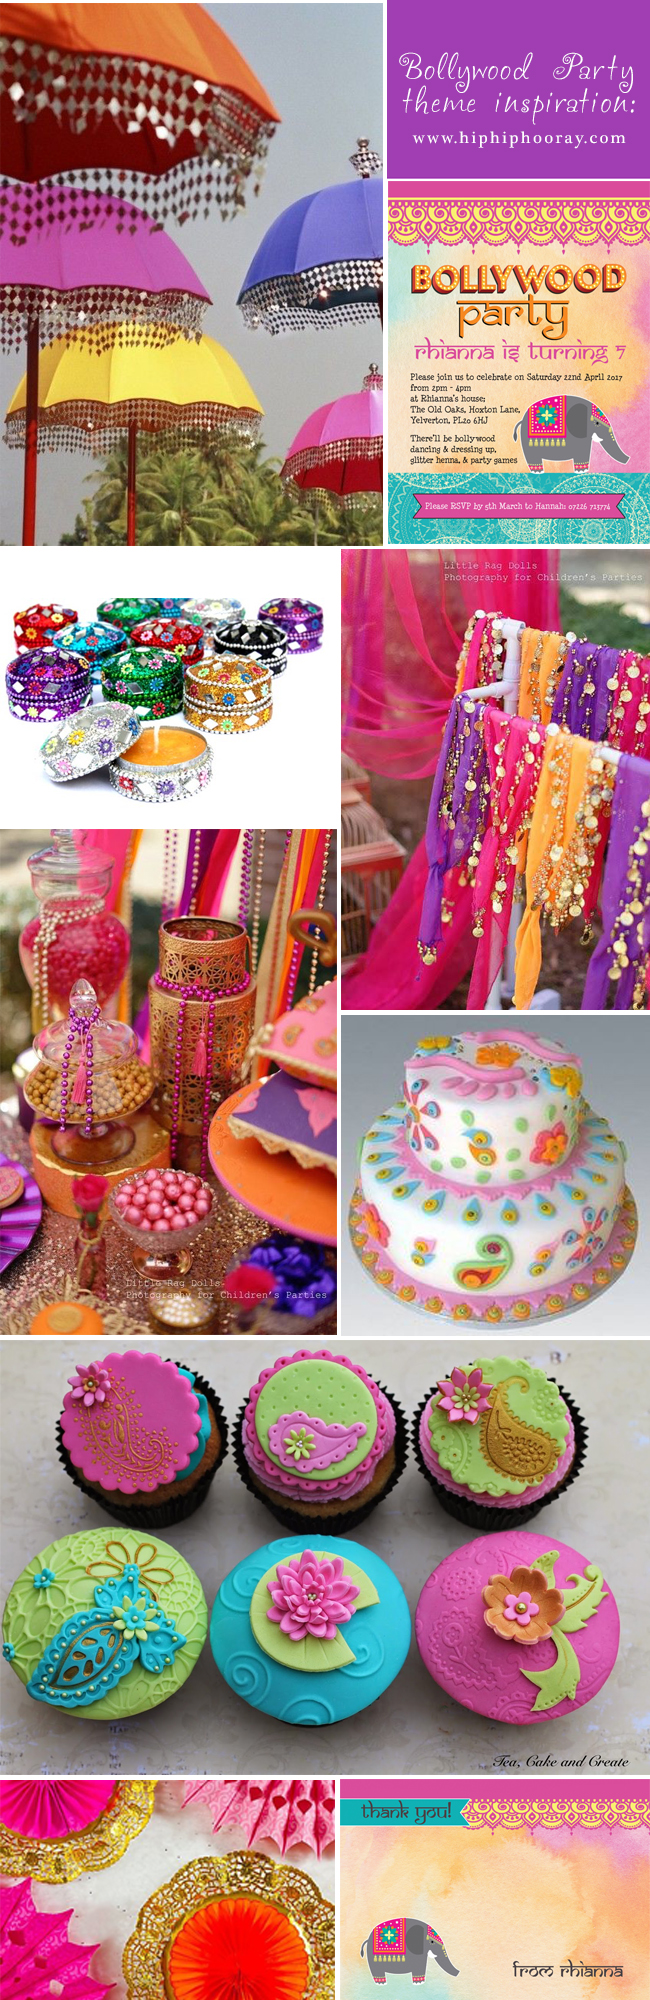 Bollywood Children S Party Themes Inspiration